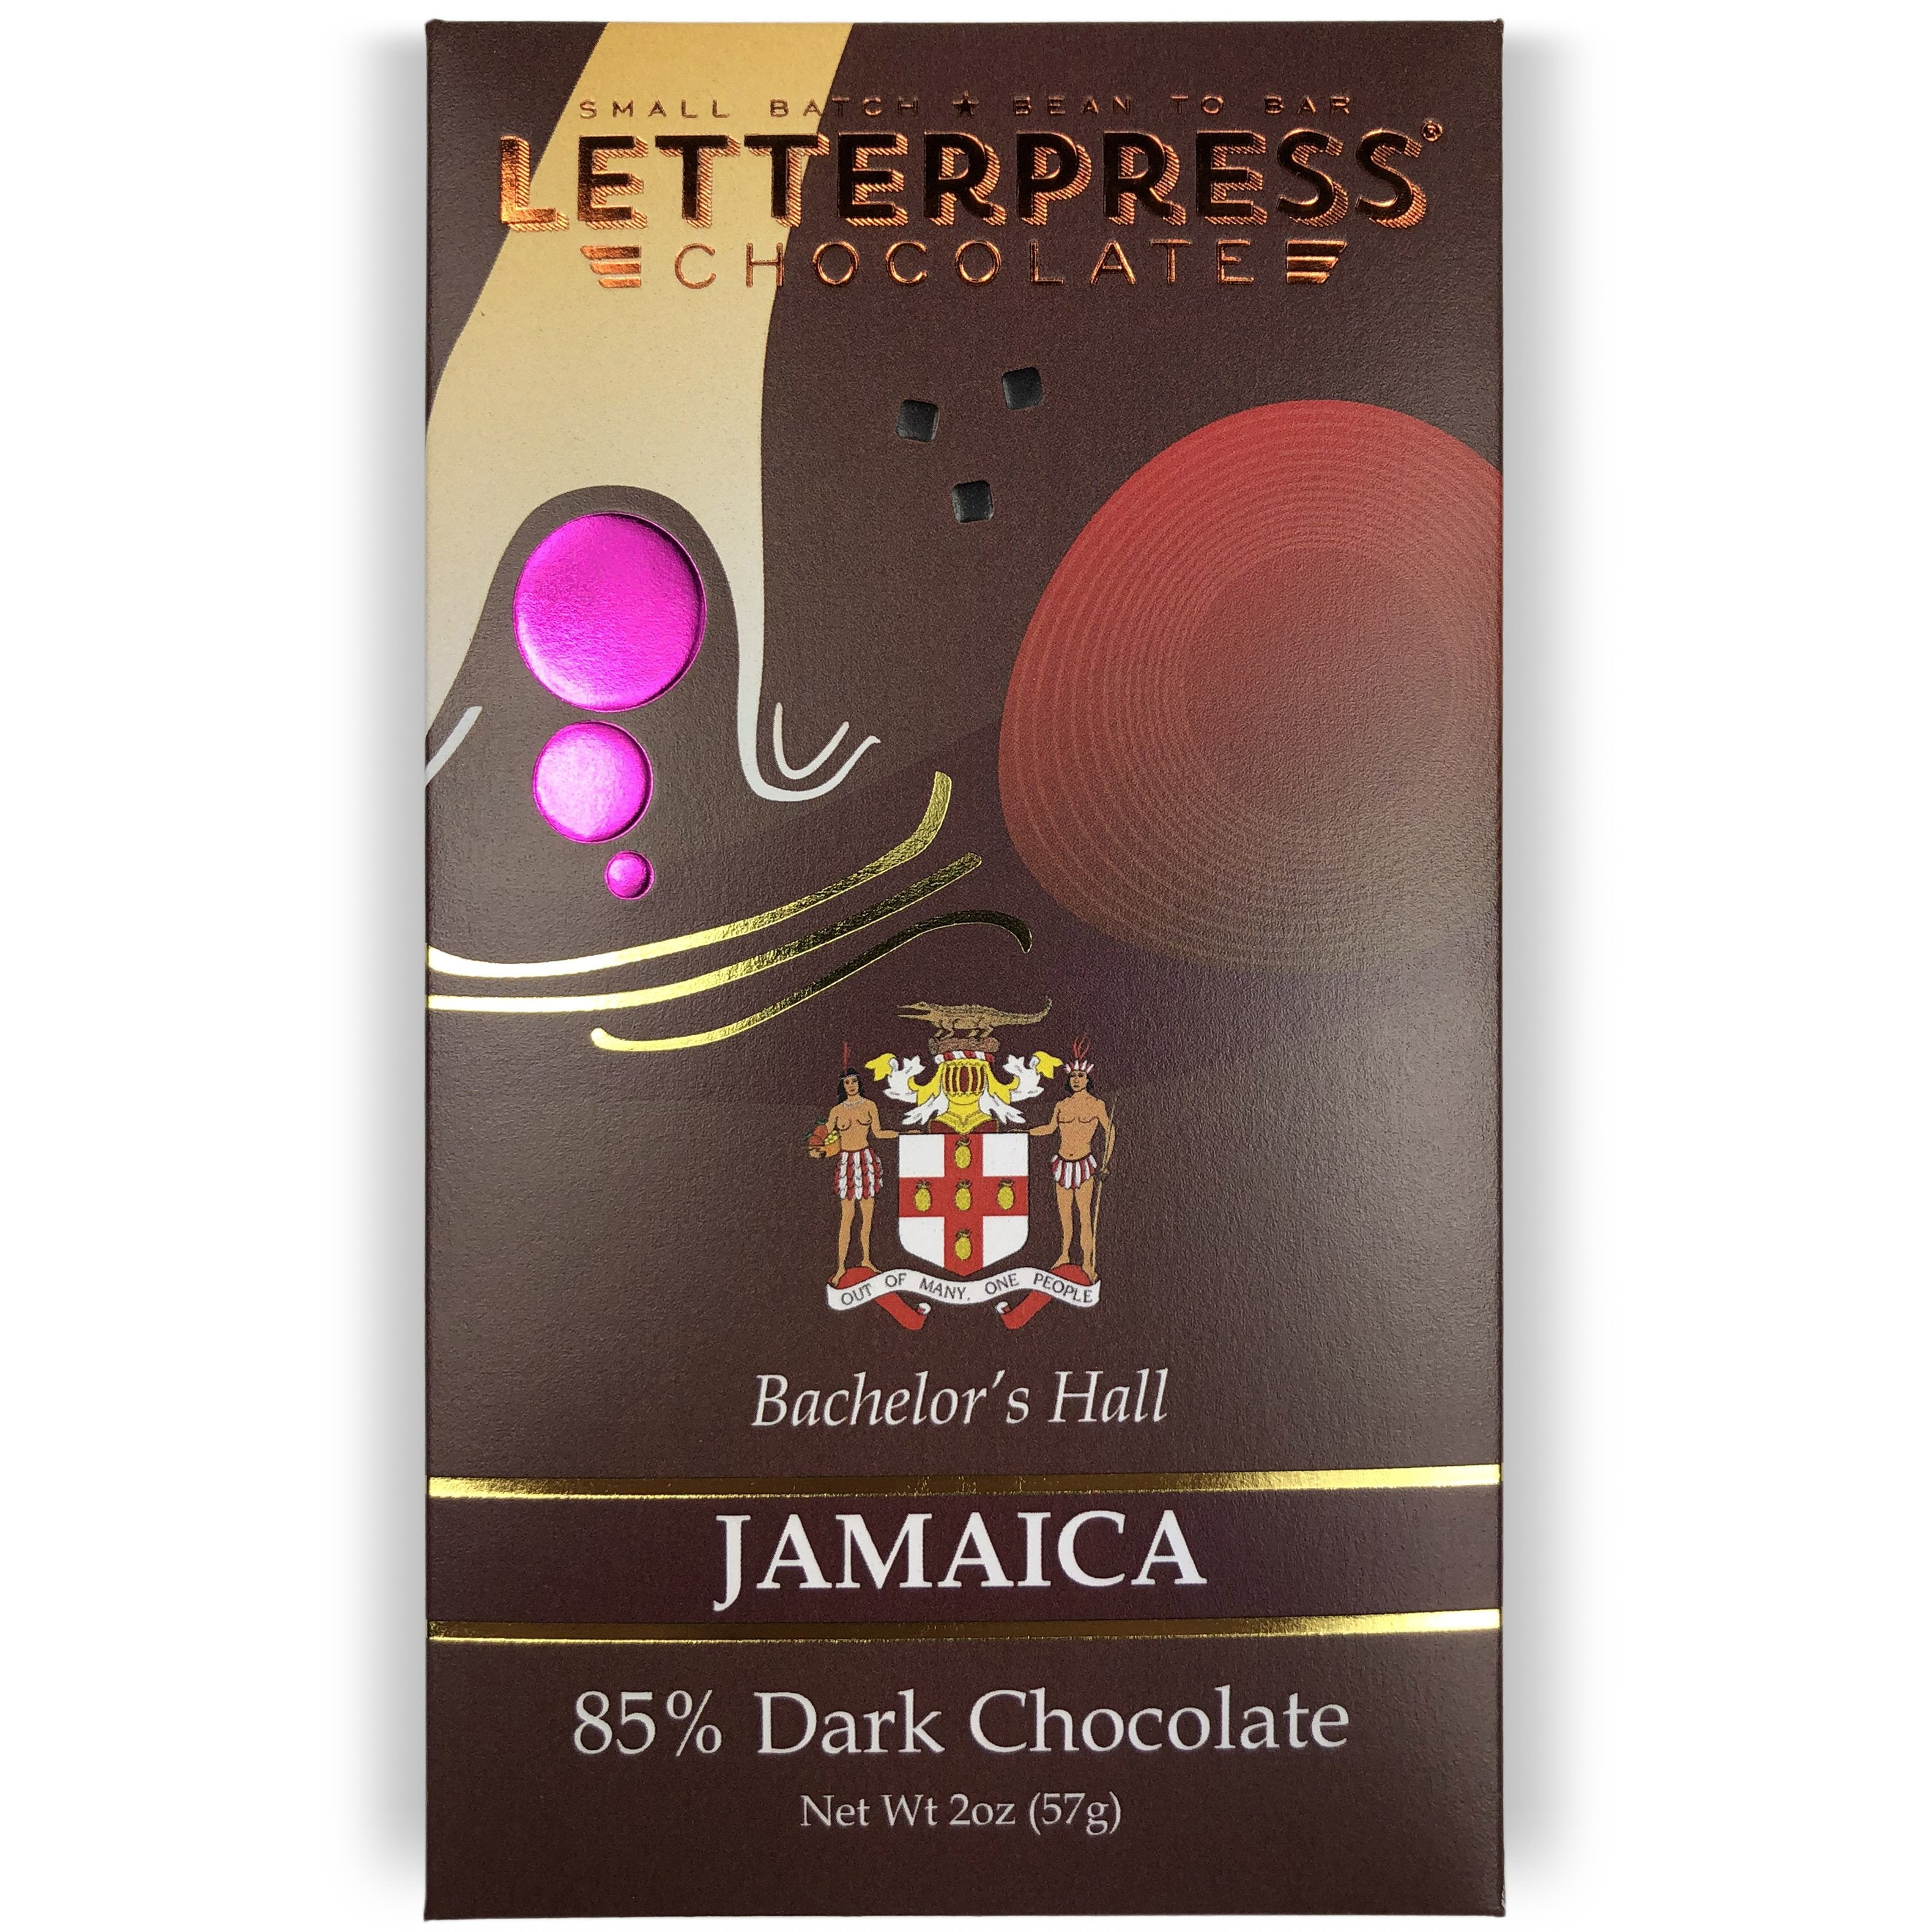 Wholesale - Jamaica, Bachelor's Hall Estate, 85% Dark Chocolate Case